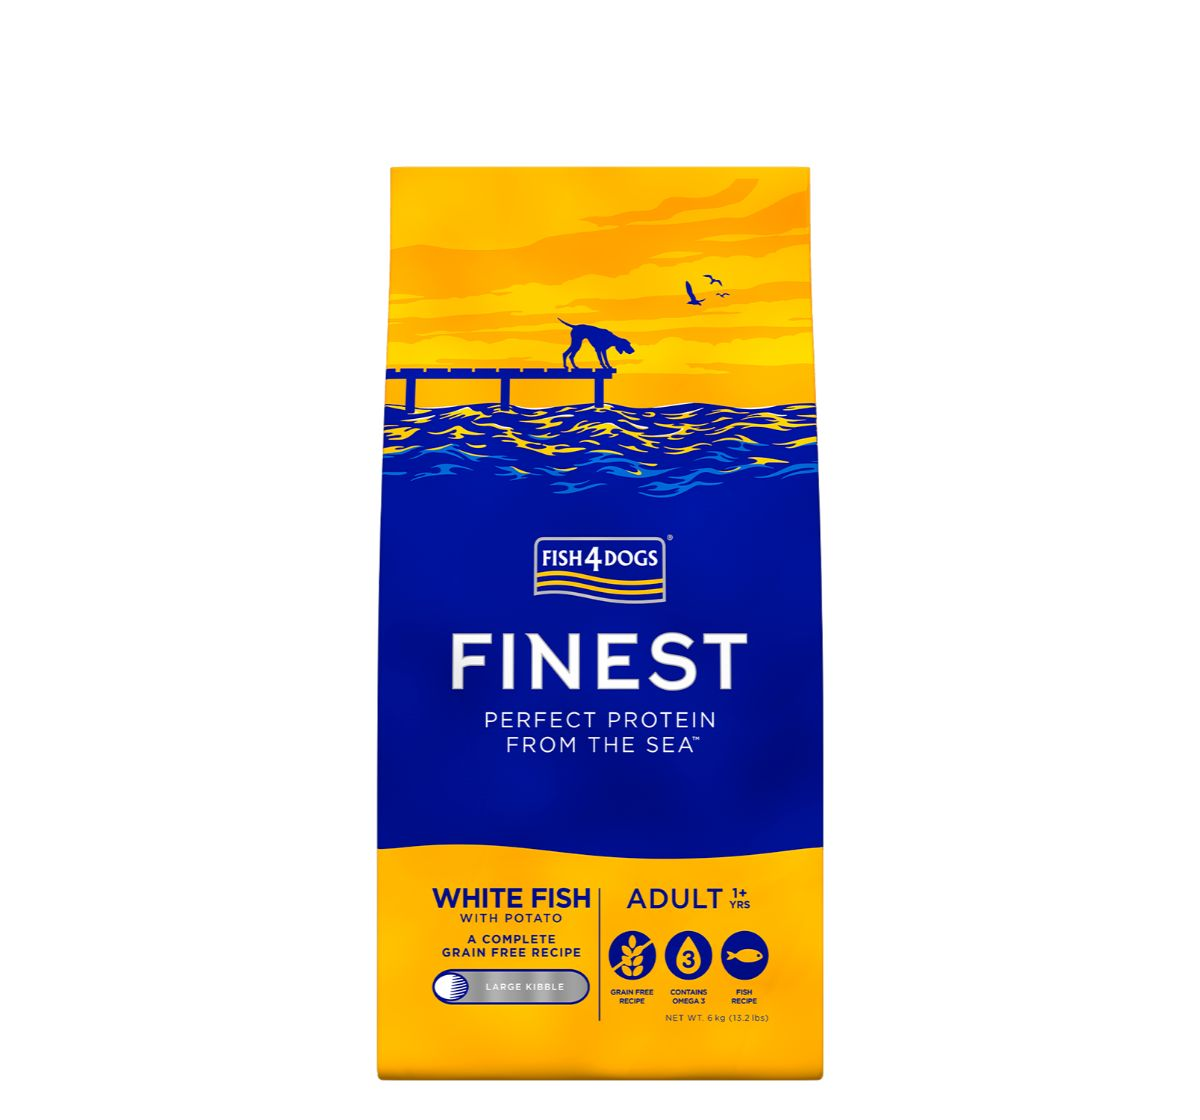 Fish4Dogs Finest Ocean White Fish Adult Dog Food -  6 Kg